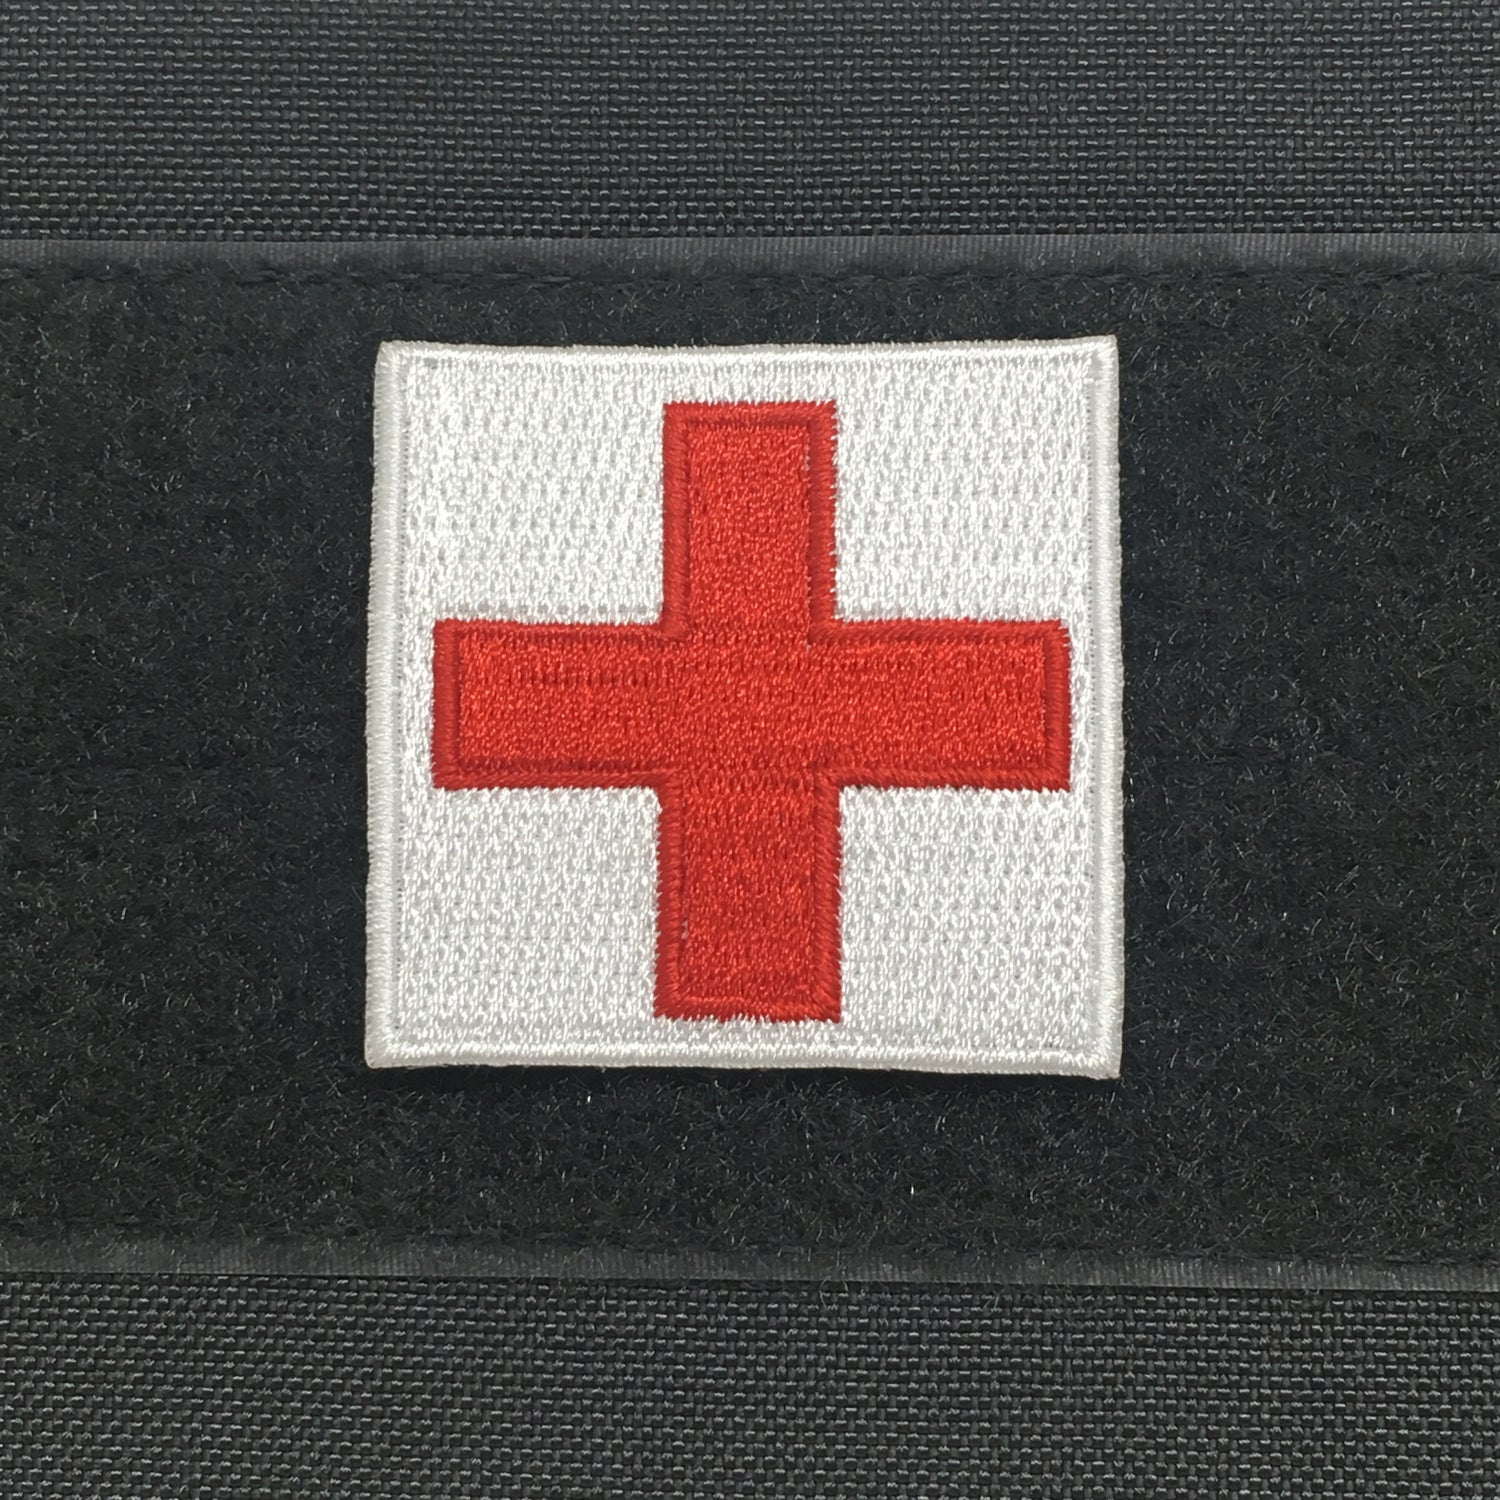 Img2132 Medic Square 2 Patch Rogue Patriot Gear